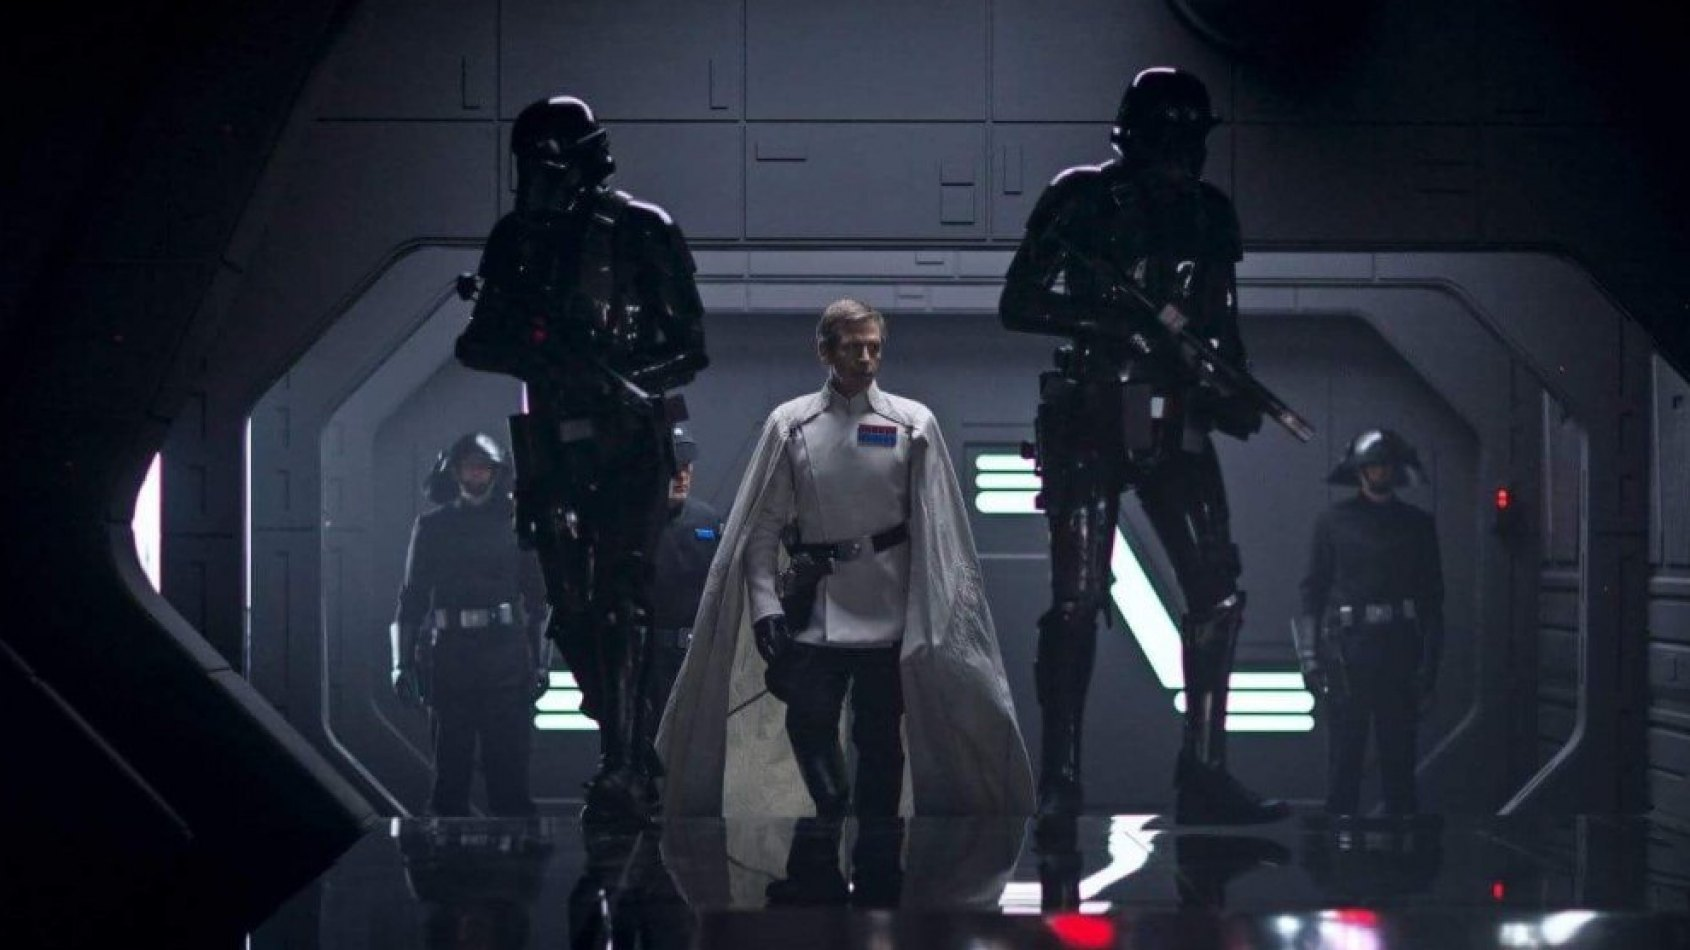 MAJ : Encore de nouvelles photos de Rogue One !